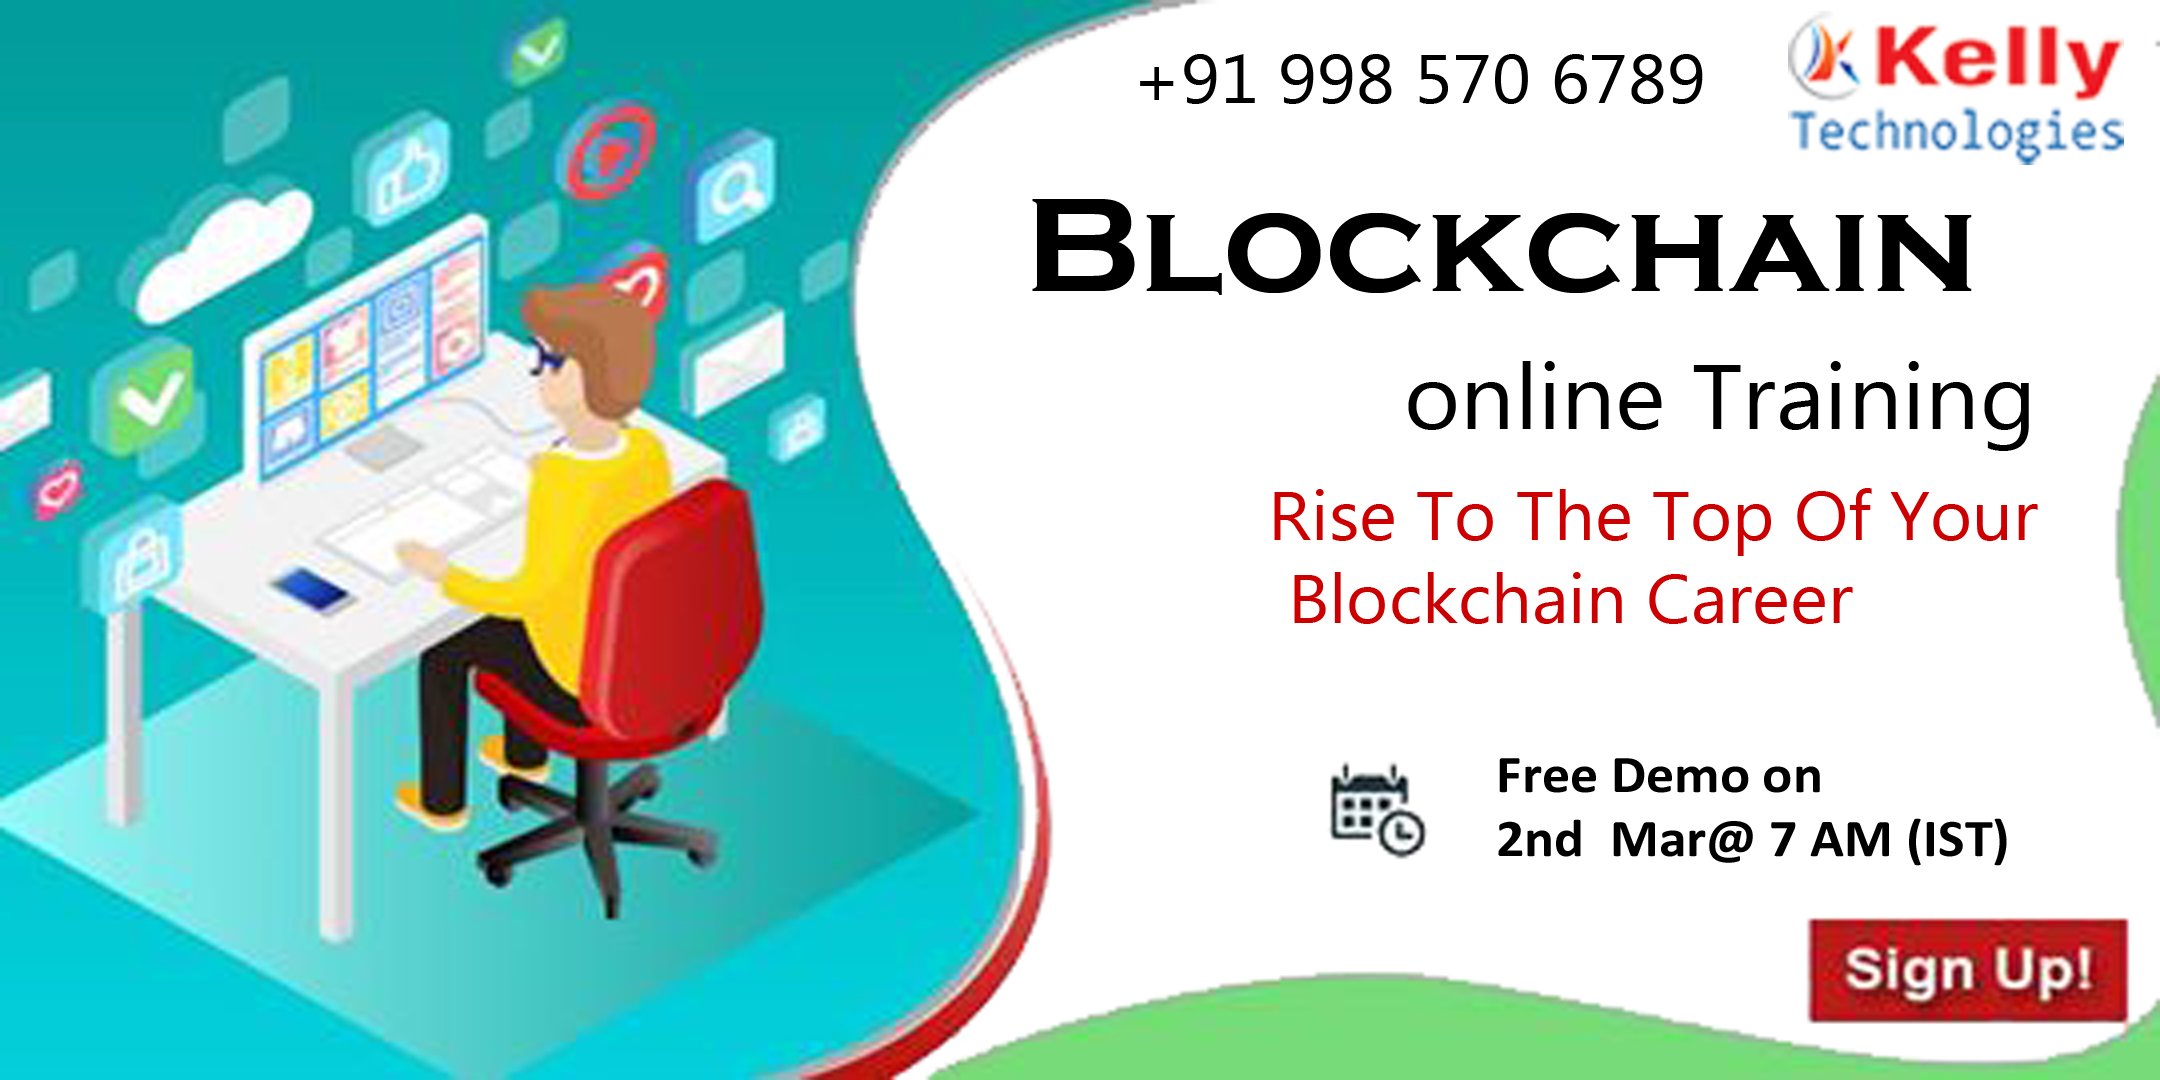 Attend Free Online Demo Session On Blockchain By Experts At Kelly Technologies Scheduled On 2nd March @ 7 AM (IST)